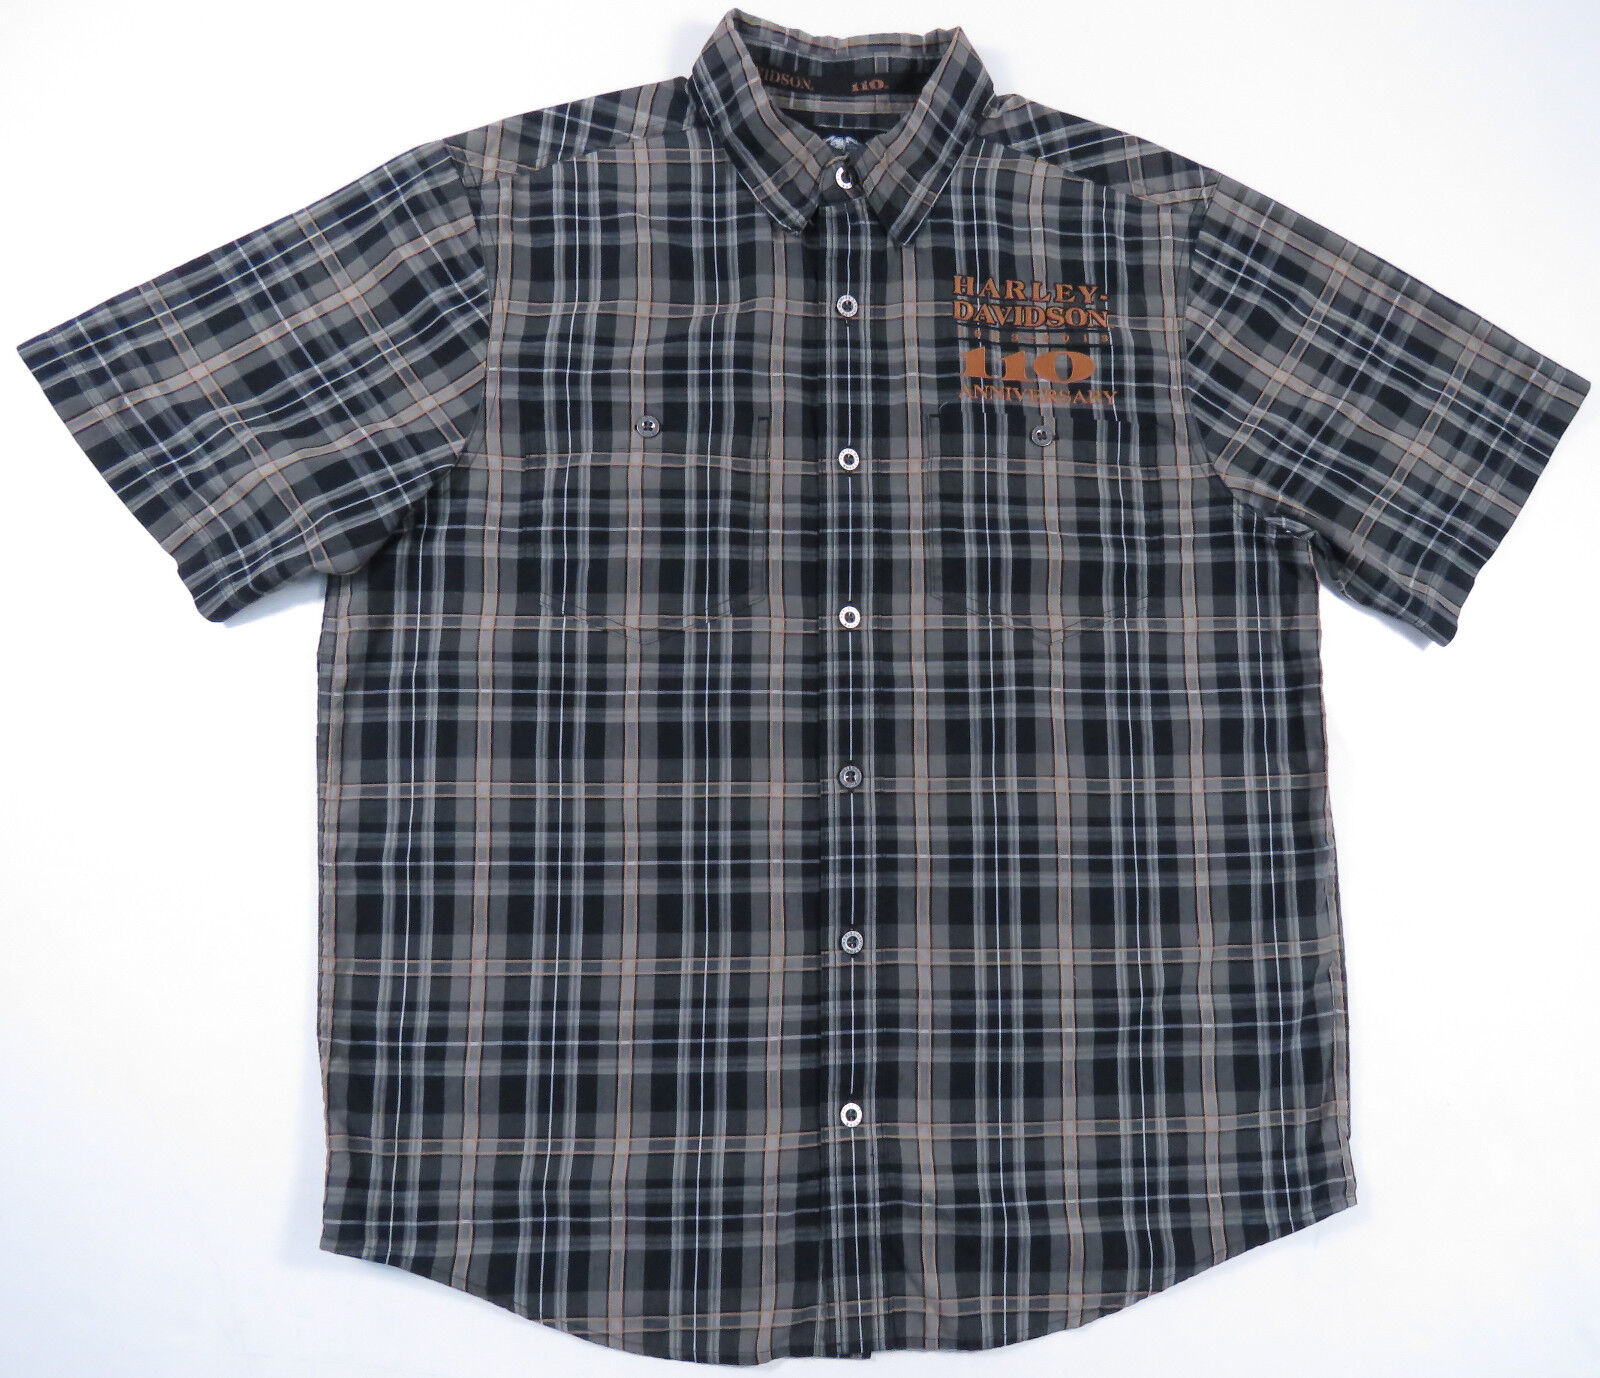 HARLEY DAVDISON 110TH ANNIVERSARY PLAID METAL BUTTON UP EMBROIDERED SHIRT MENS L